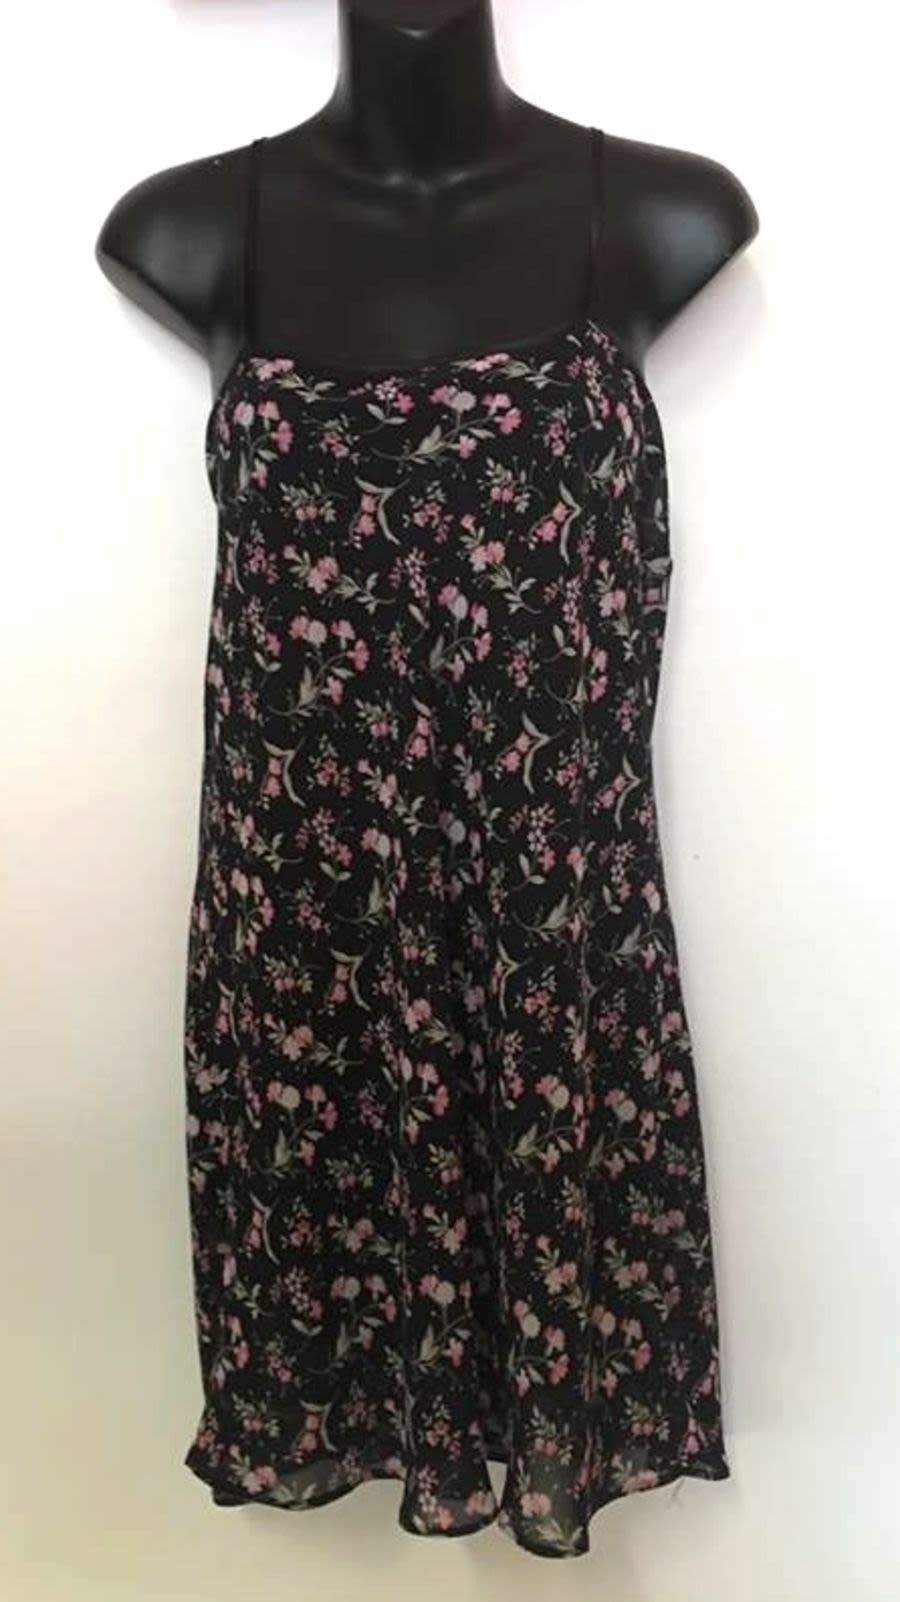 Vintage Womens 1990's Grunge Black and Pink Floral Slip Dress